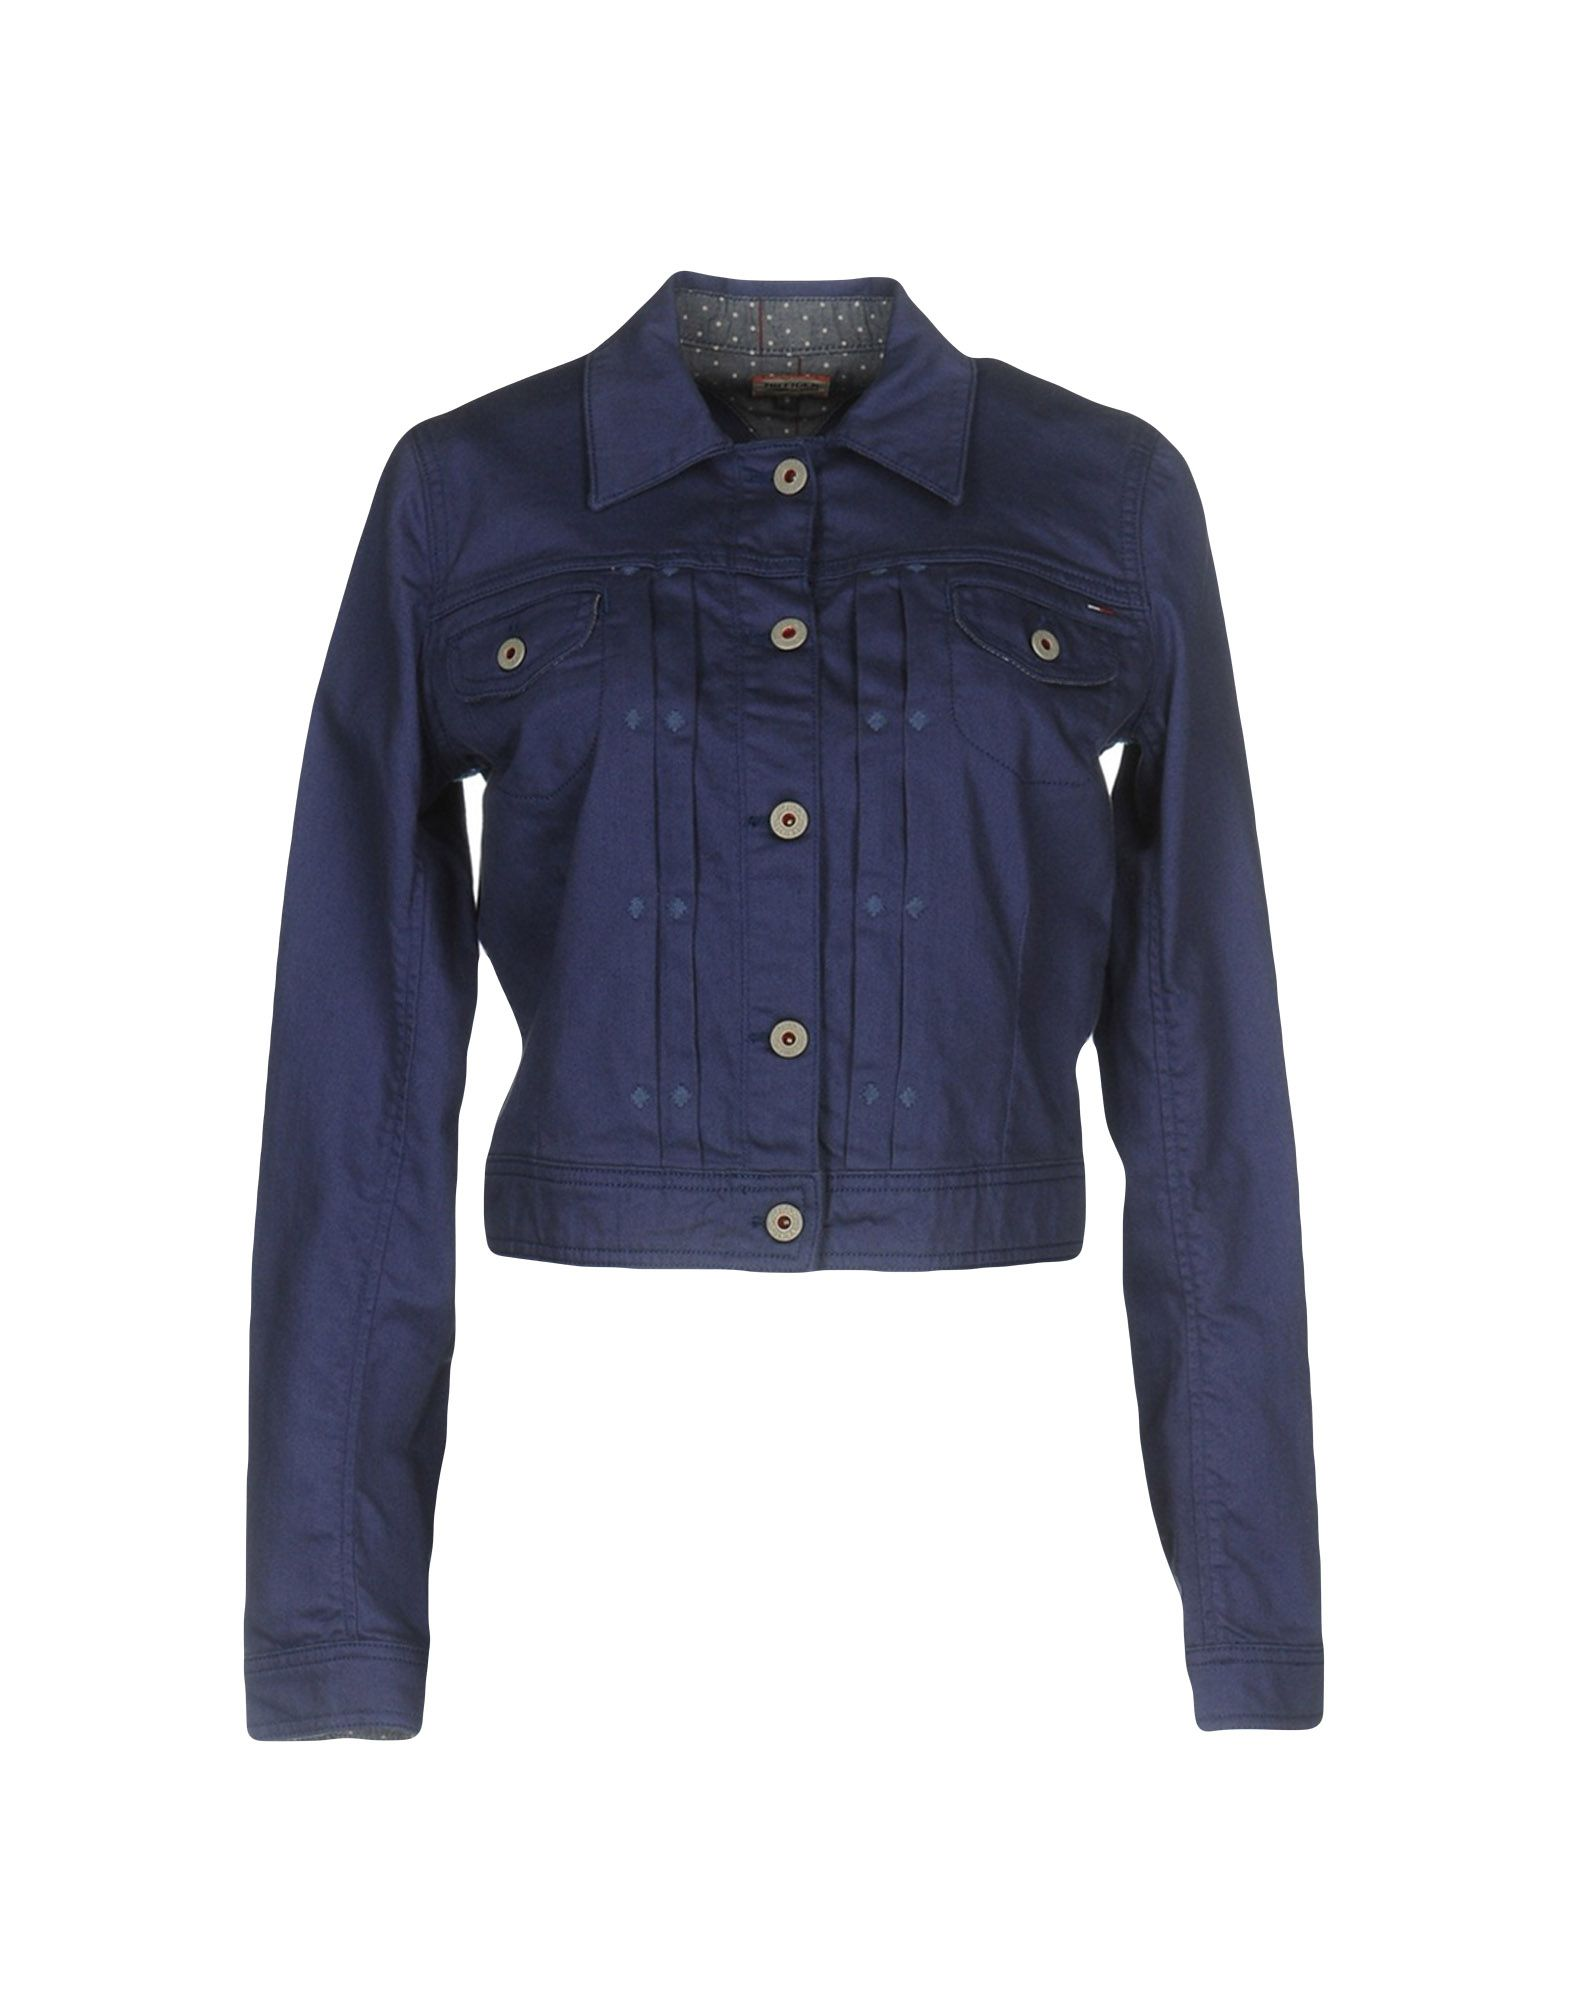 TOMMY HILFIGER DENIM Джинсовая верхняя одежда футболка tommy hilfiger denim tommy hilfiger denim to013ewtpb98